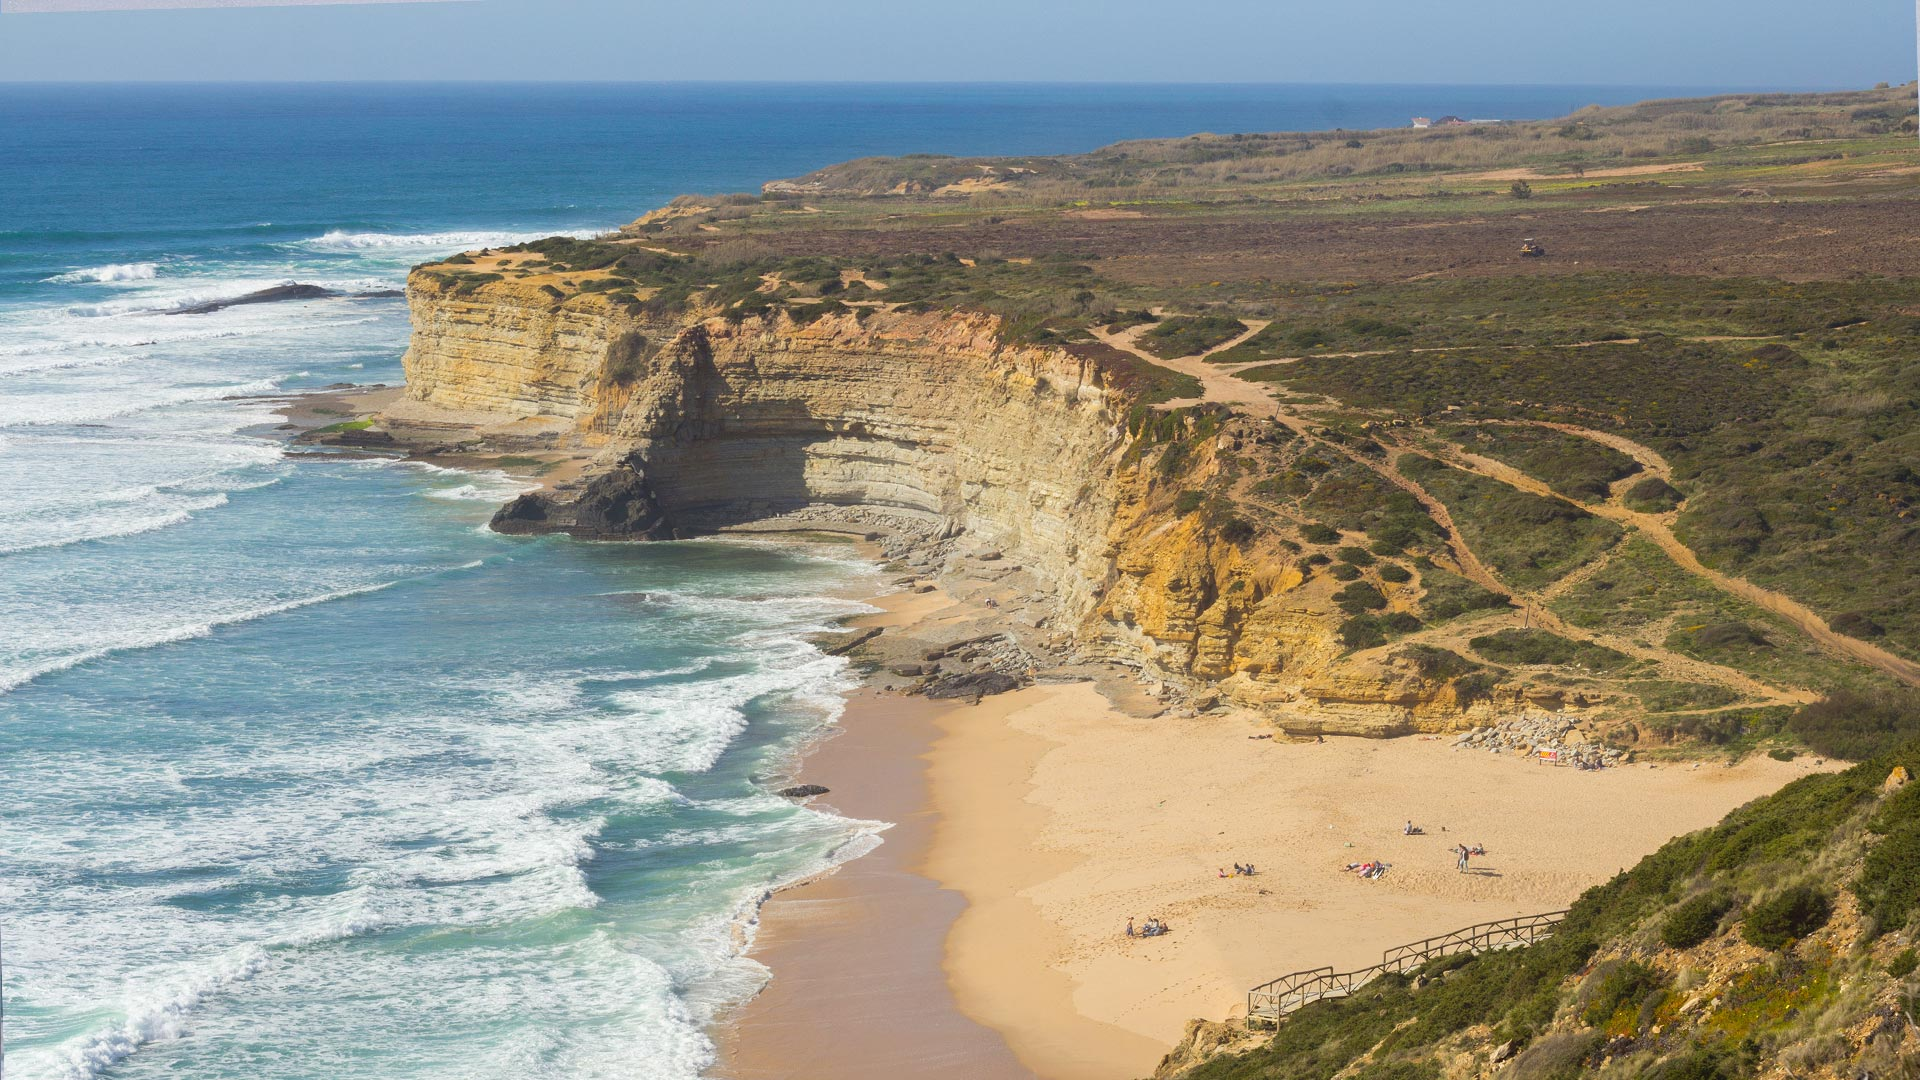 Ericeira – Europe's First World Surfing Reserve